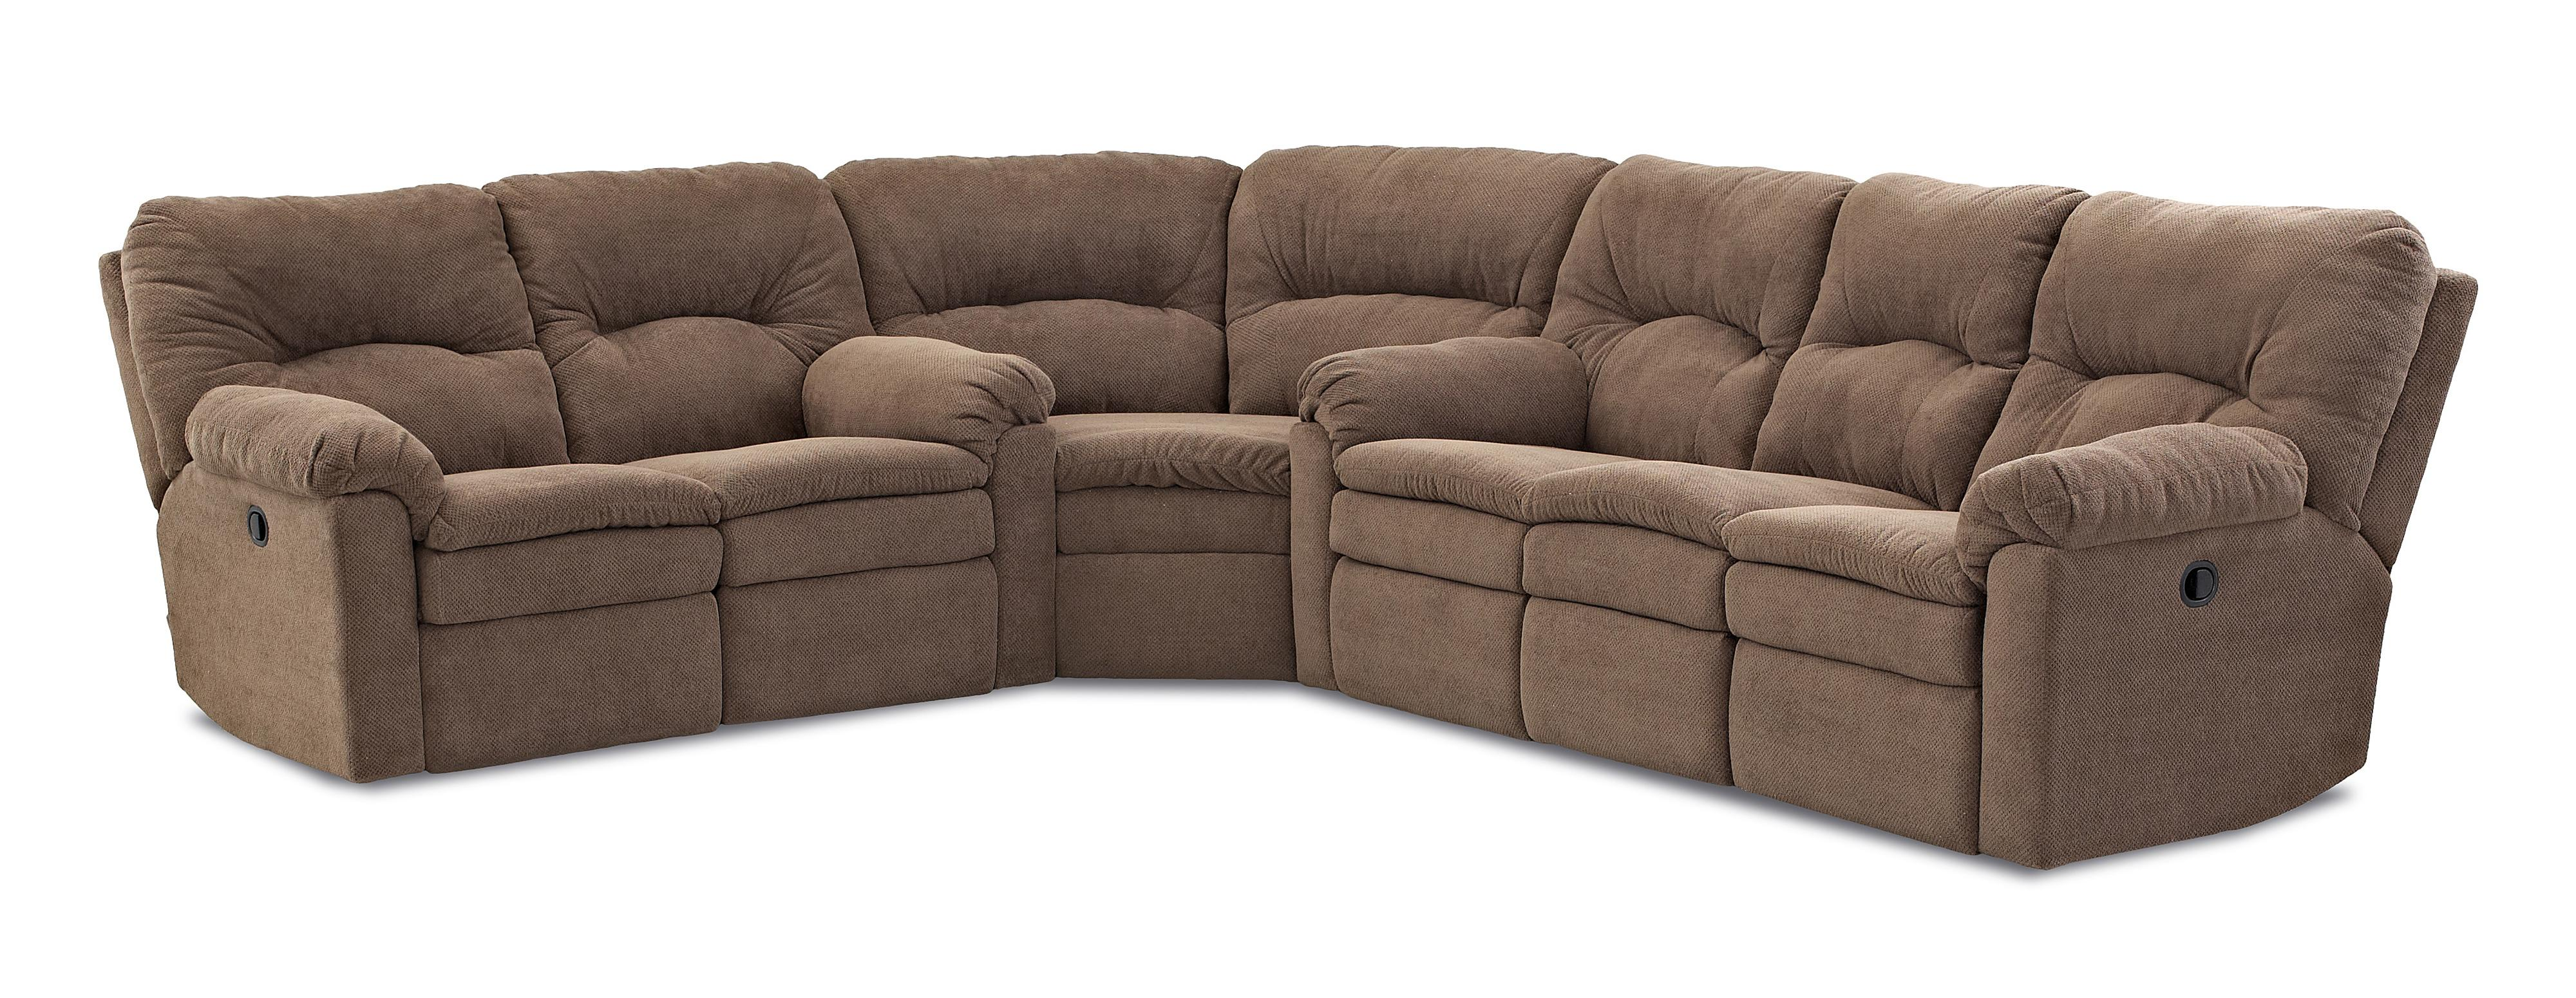 Casual 3 Piece Power Reclining Sectional Sofa by Klaussner